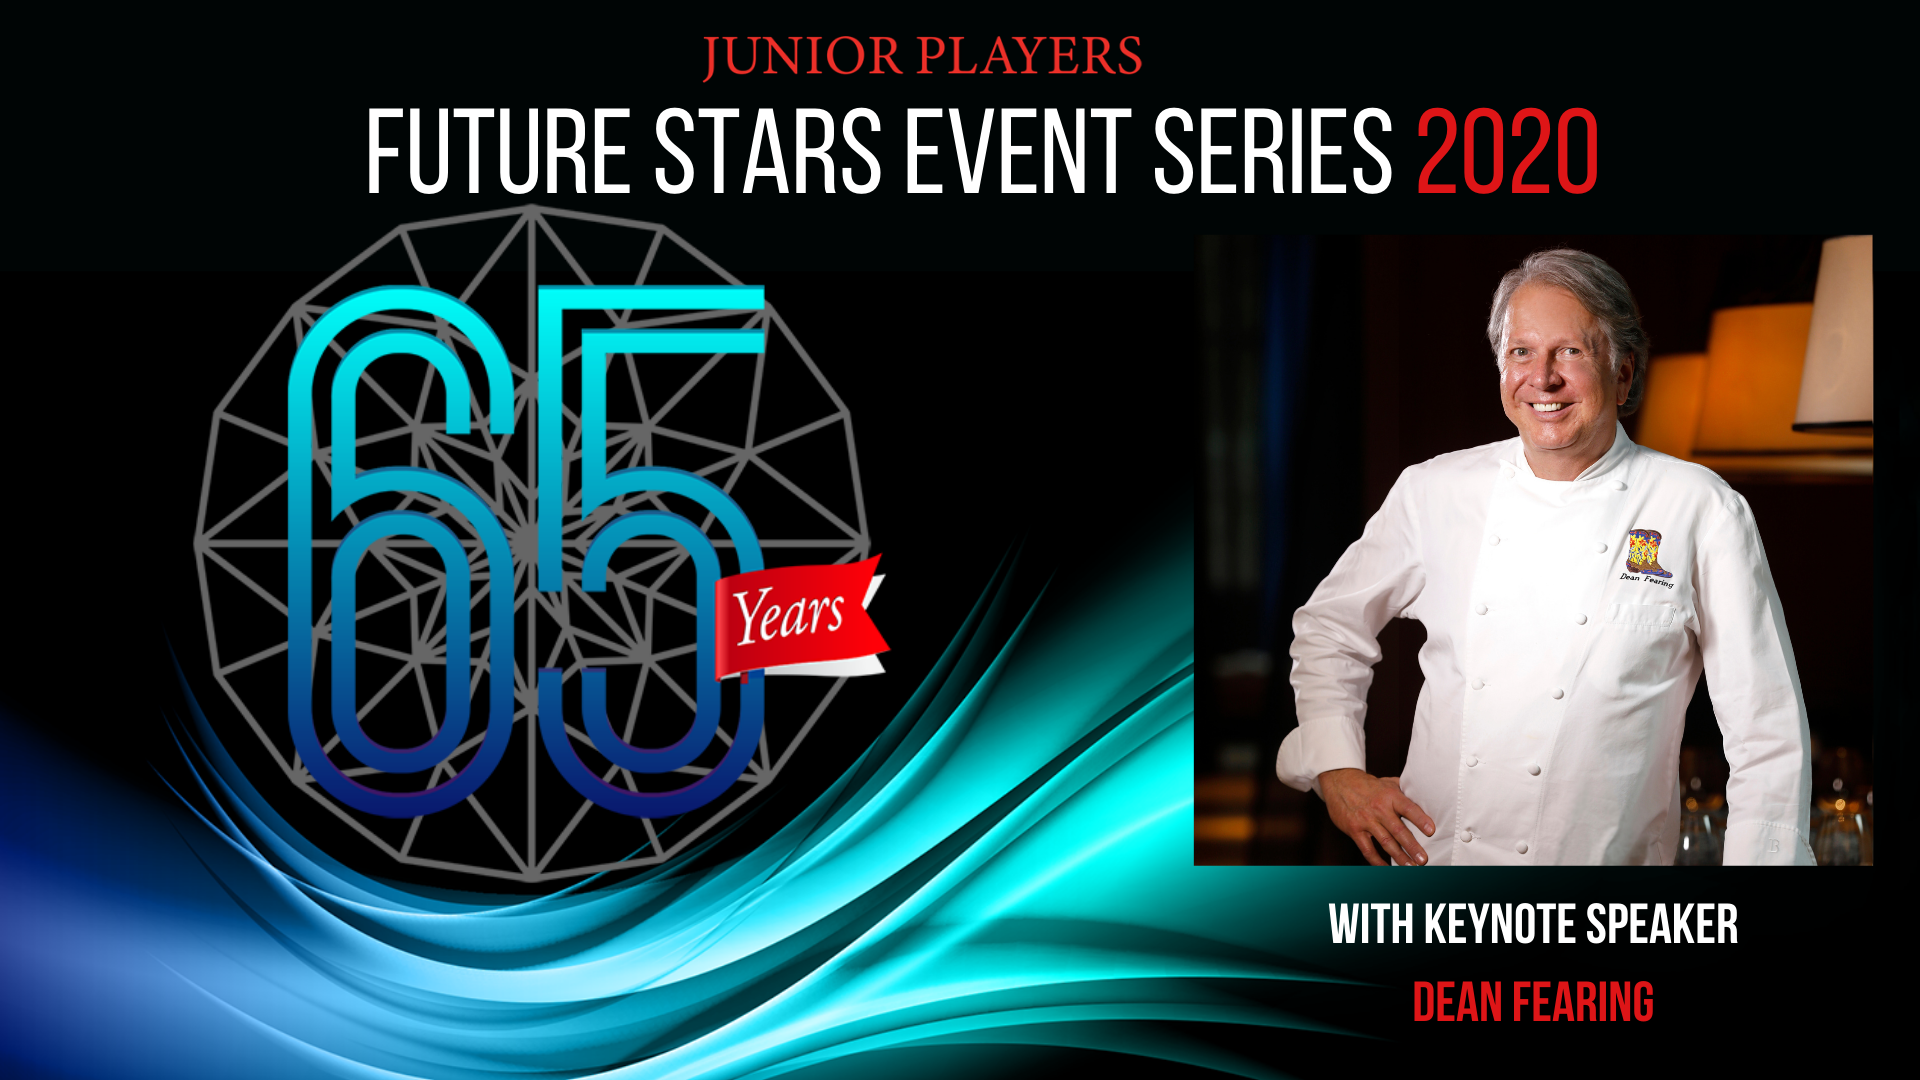 Future Stars Event Series Featuring Keynote Speaker Dean Fearing